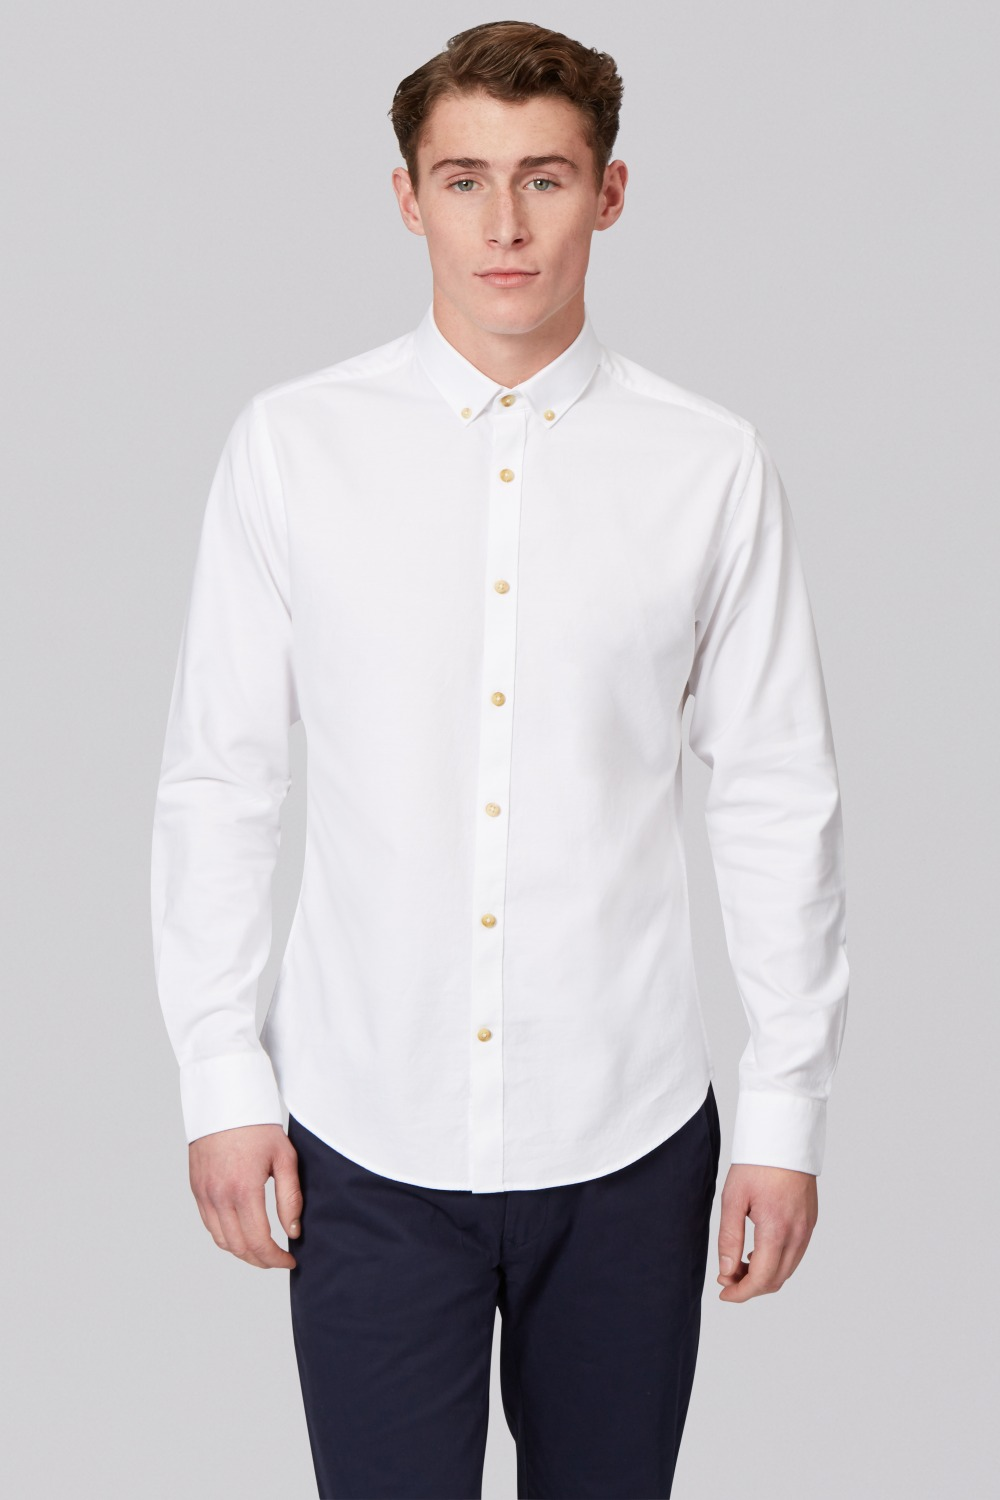 Men's casual button-down shirts offer the versatility of being appropriate, semi-casual attire that pair well with khakis or jeans. Men's button-down shirt collar types There are several factors to keep in mind when purchasing button-down shirts, including the collar size and style.